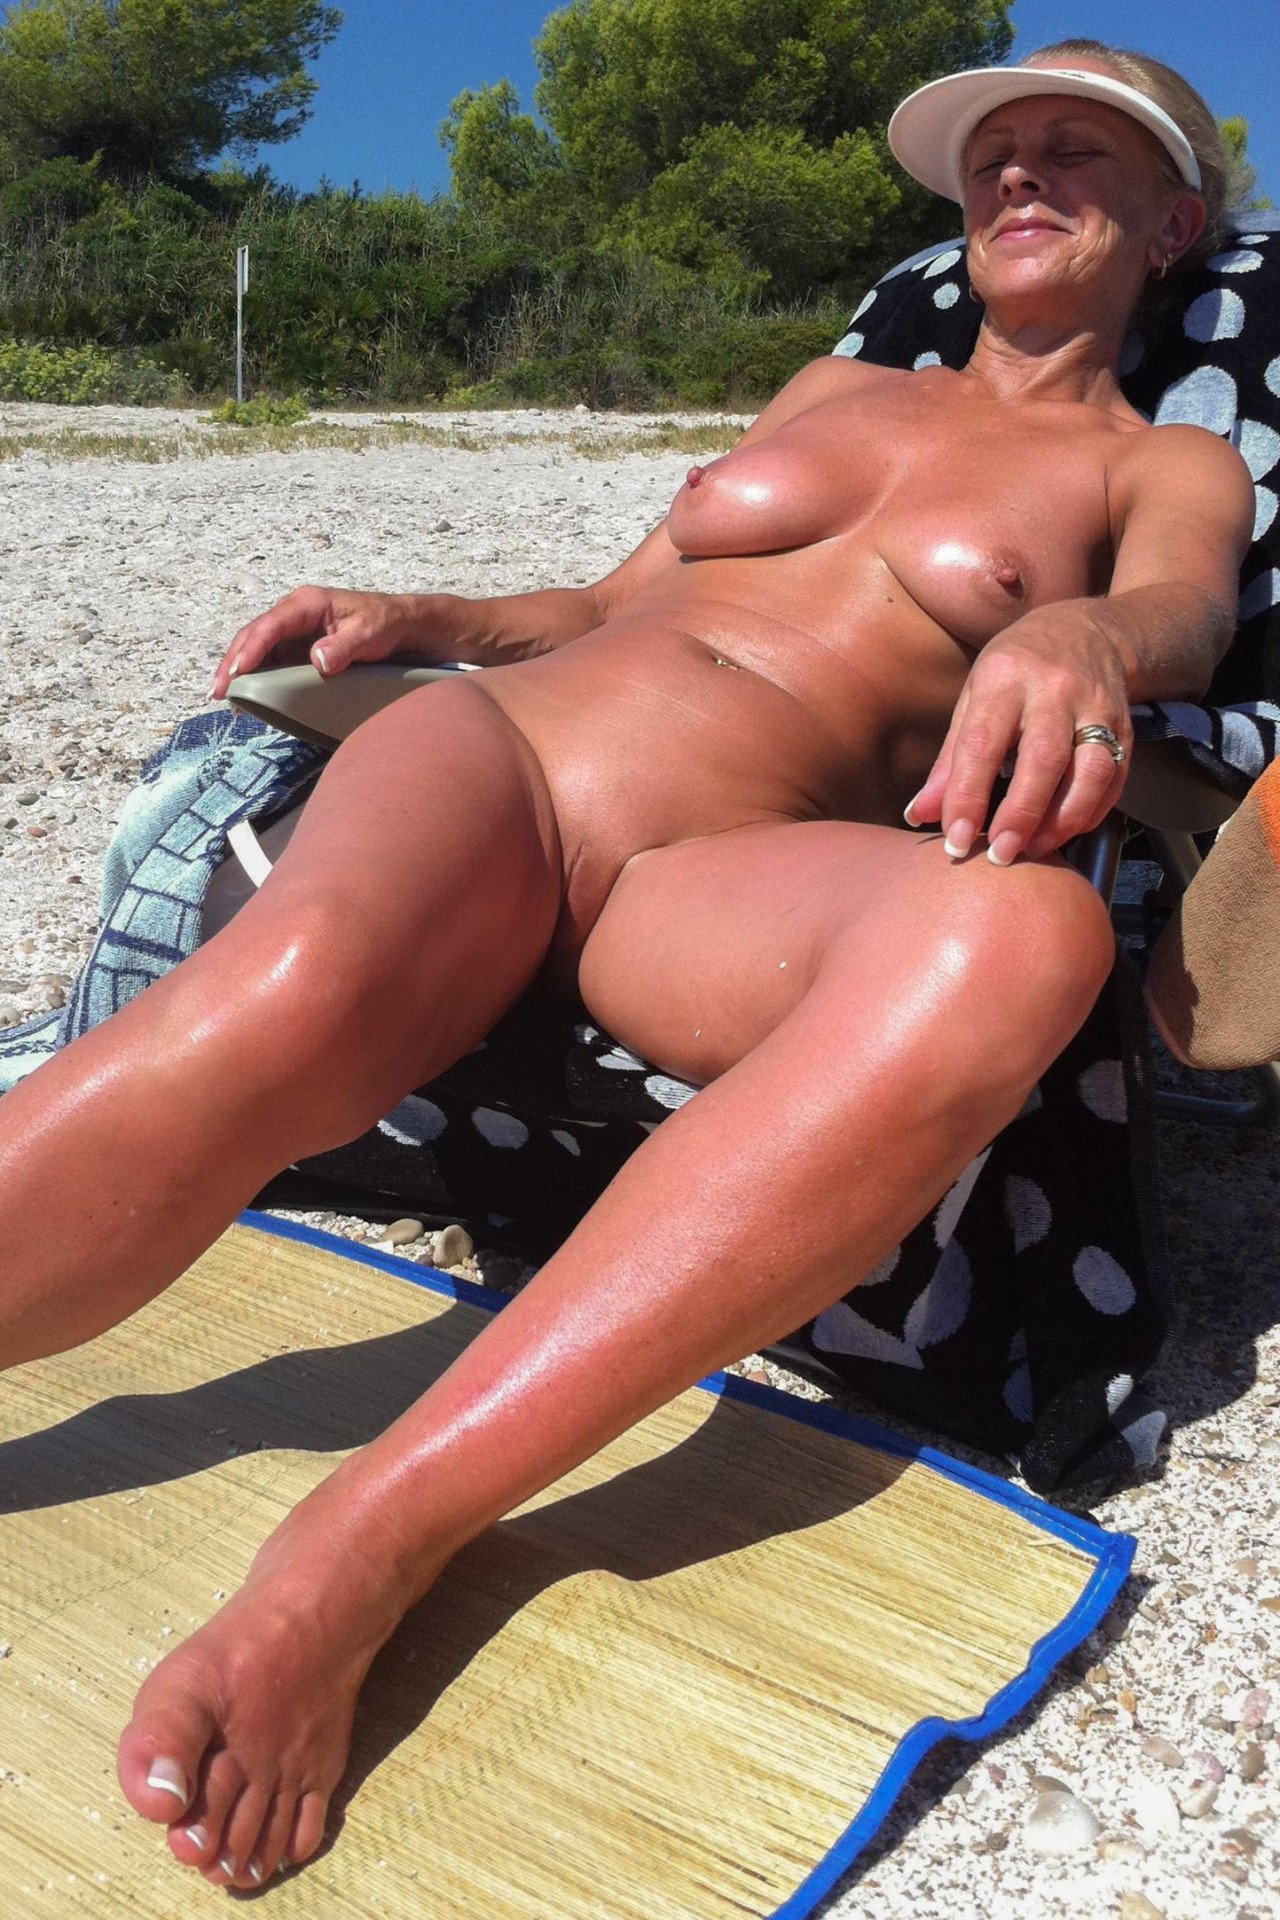 Son cheat steomom big tits beach porn